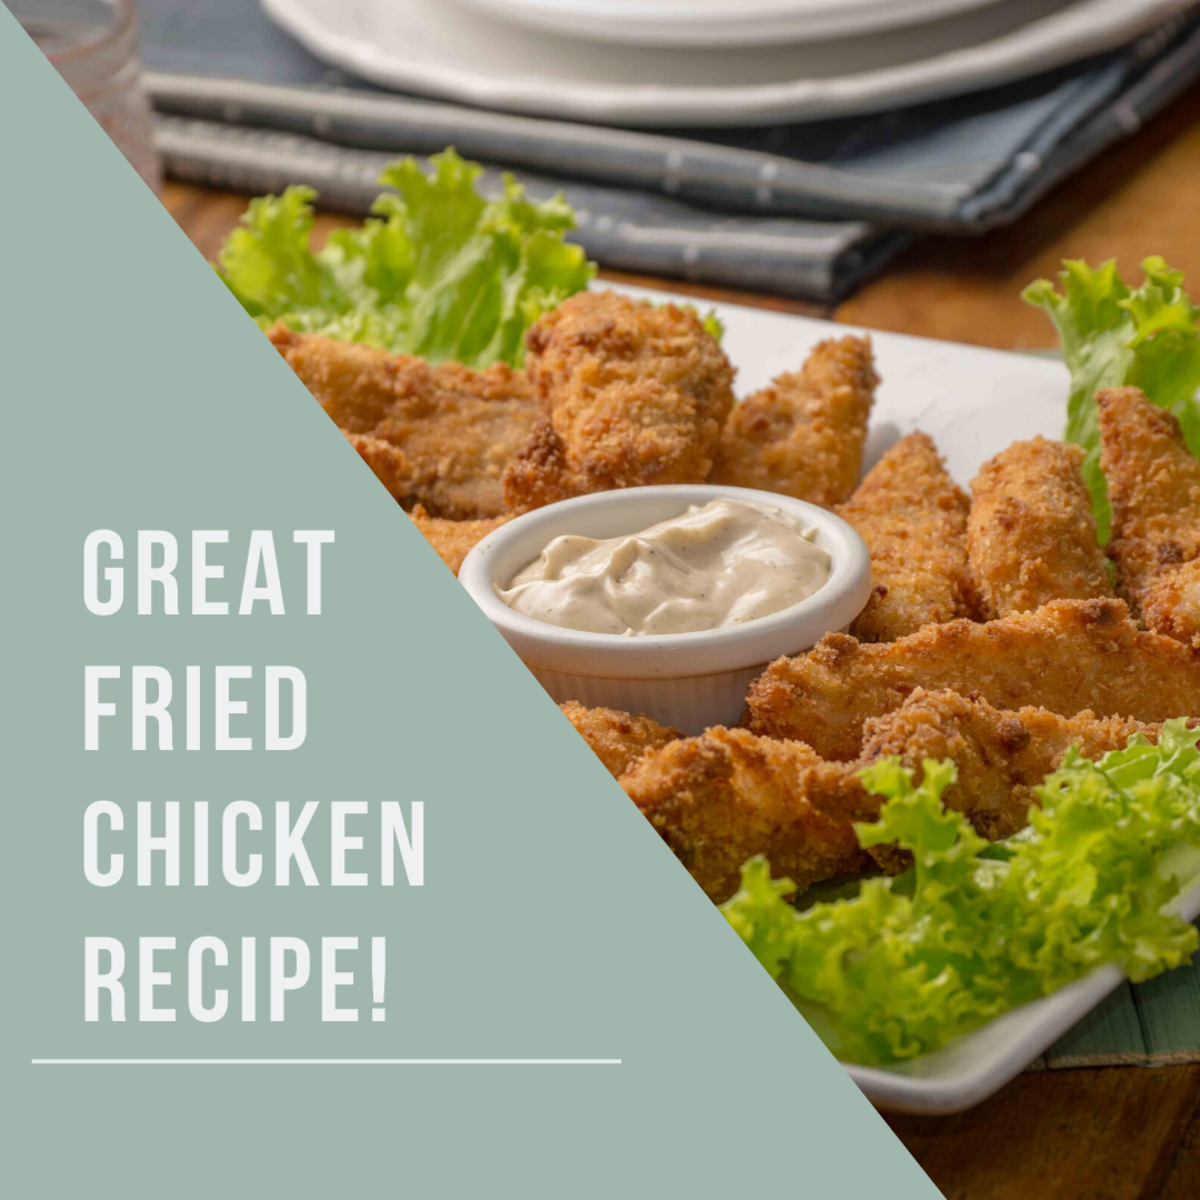 This fried chicken recipe is great for all occasions.